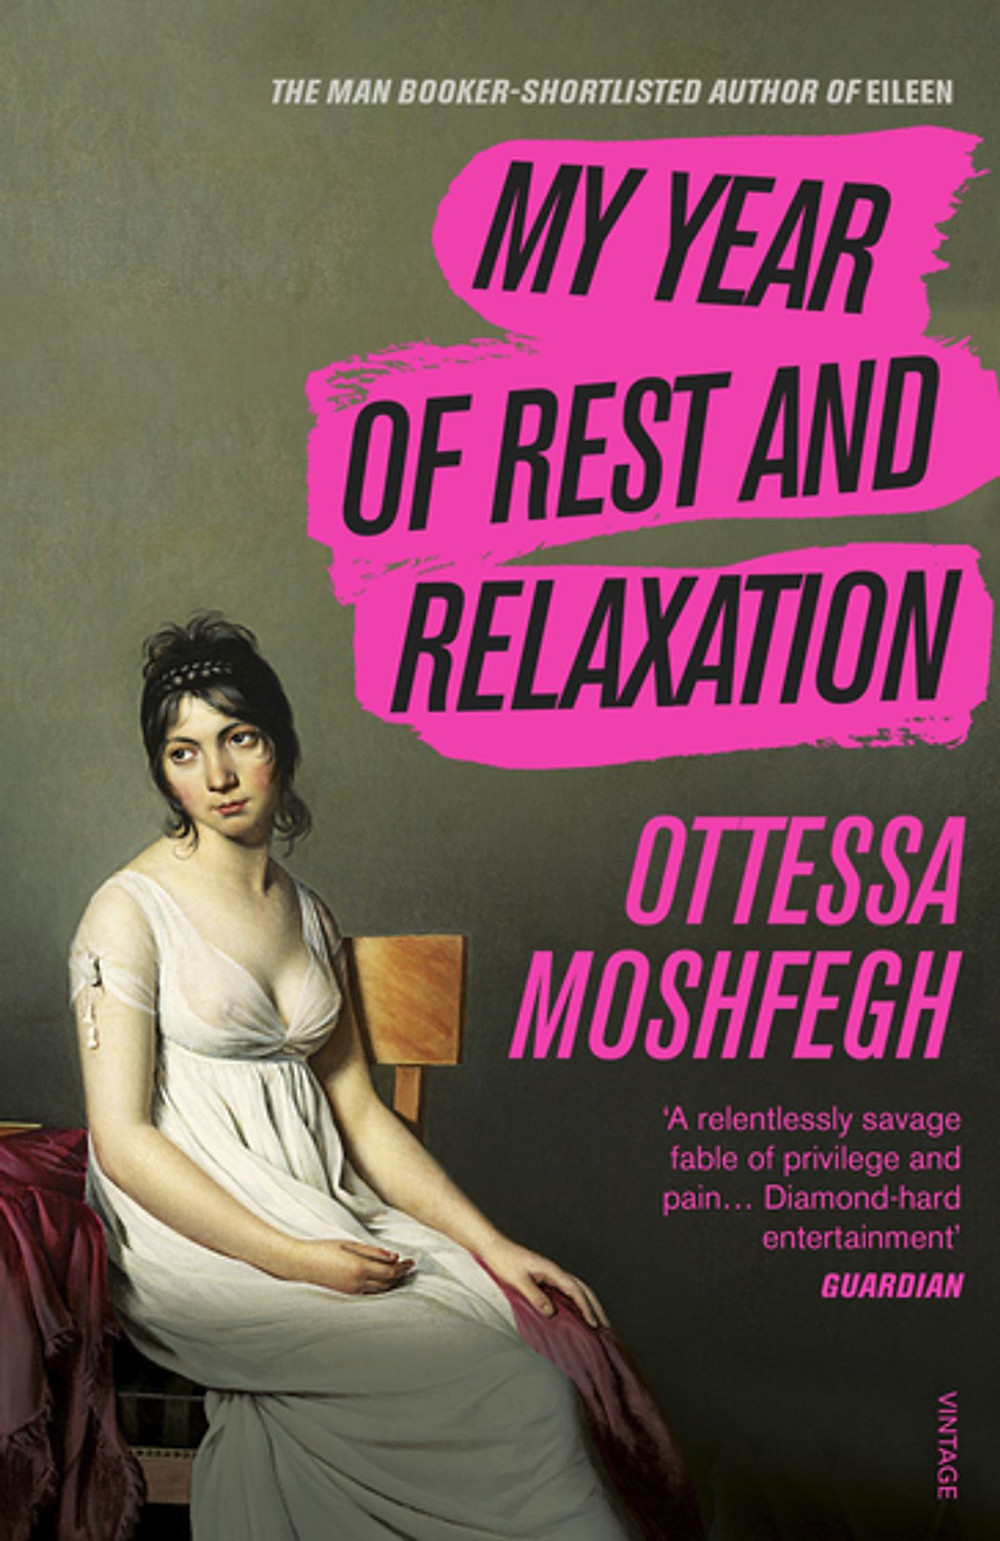 My Year of Rest and Relaxation by Ottessa Moshfegh